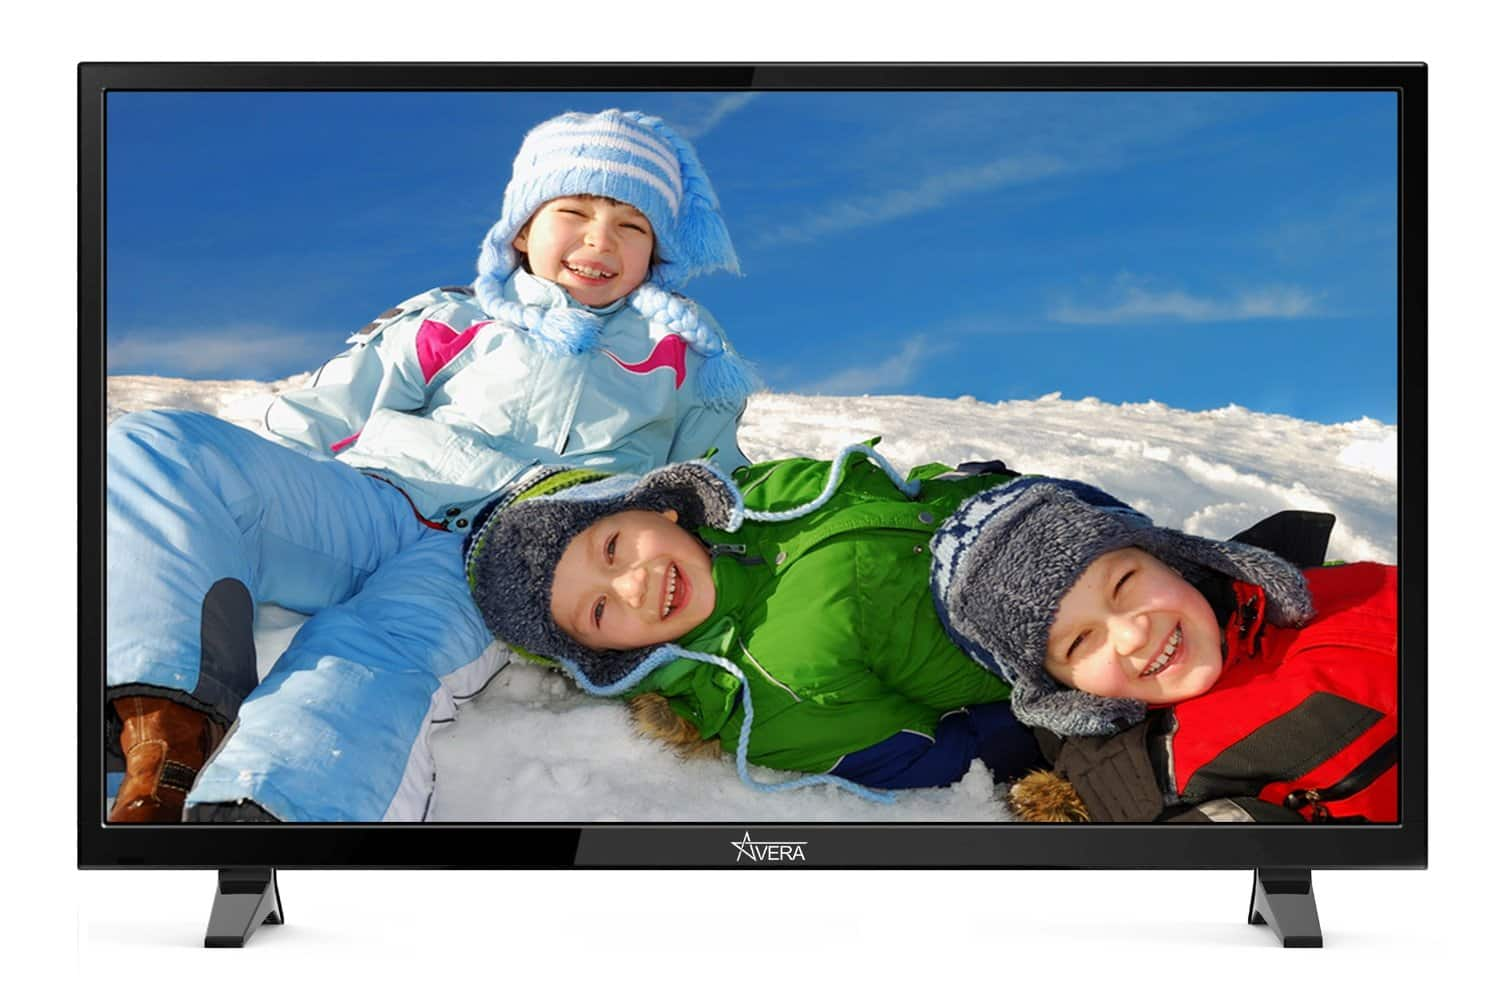 "Avera 32"" 720 LED TV - $75 - Amazon.com Cyber Monday Lightning deal- Prime only till 3:45am EST"